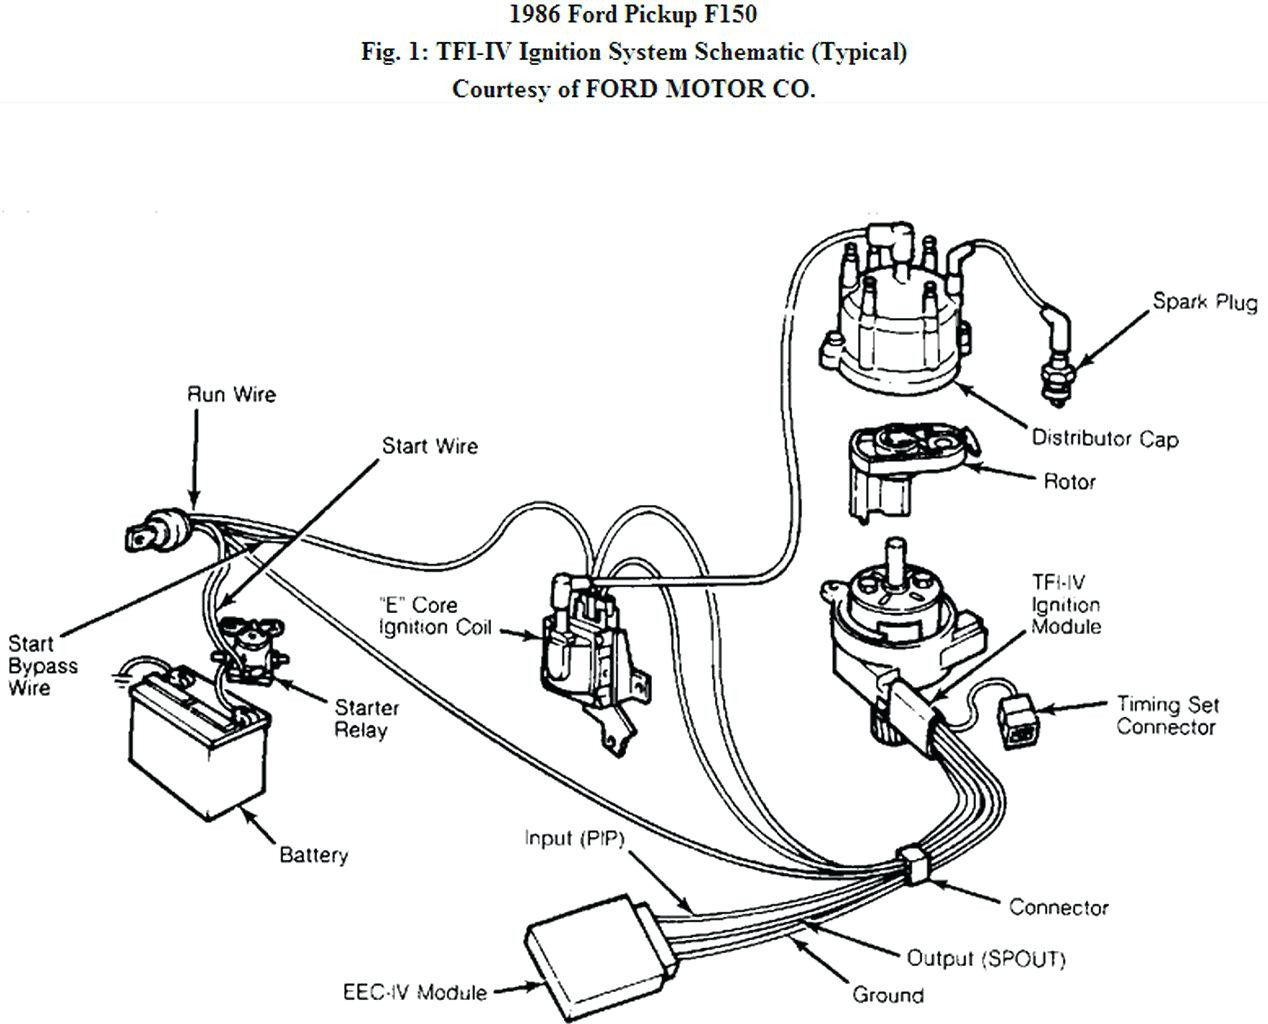 hight resolution of 86 ford f 150 engine schematics wiring diagram schema 1986 ford f 150 ignition wiring diagram